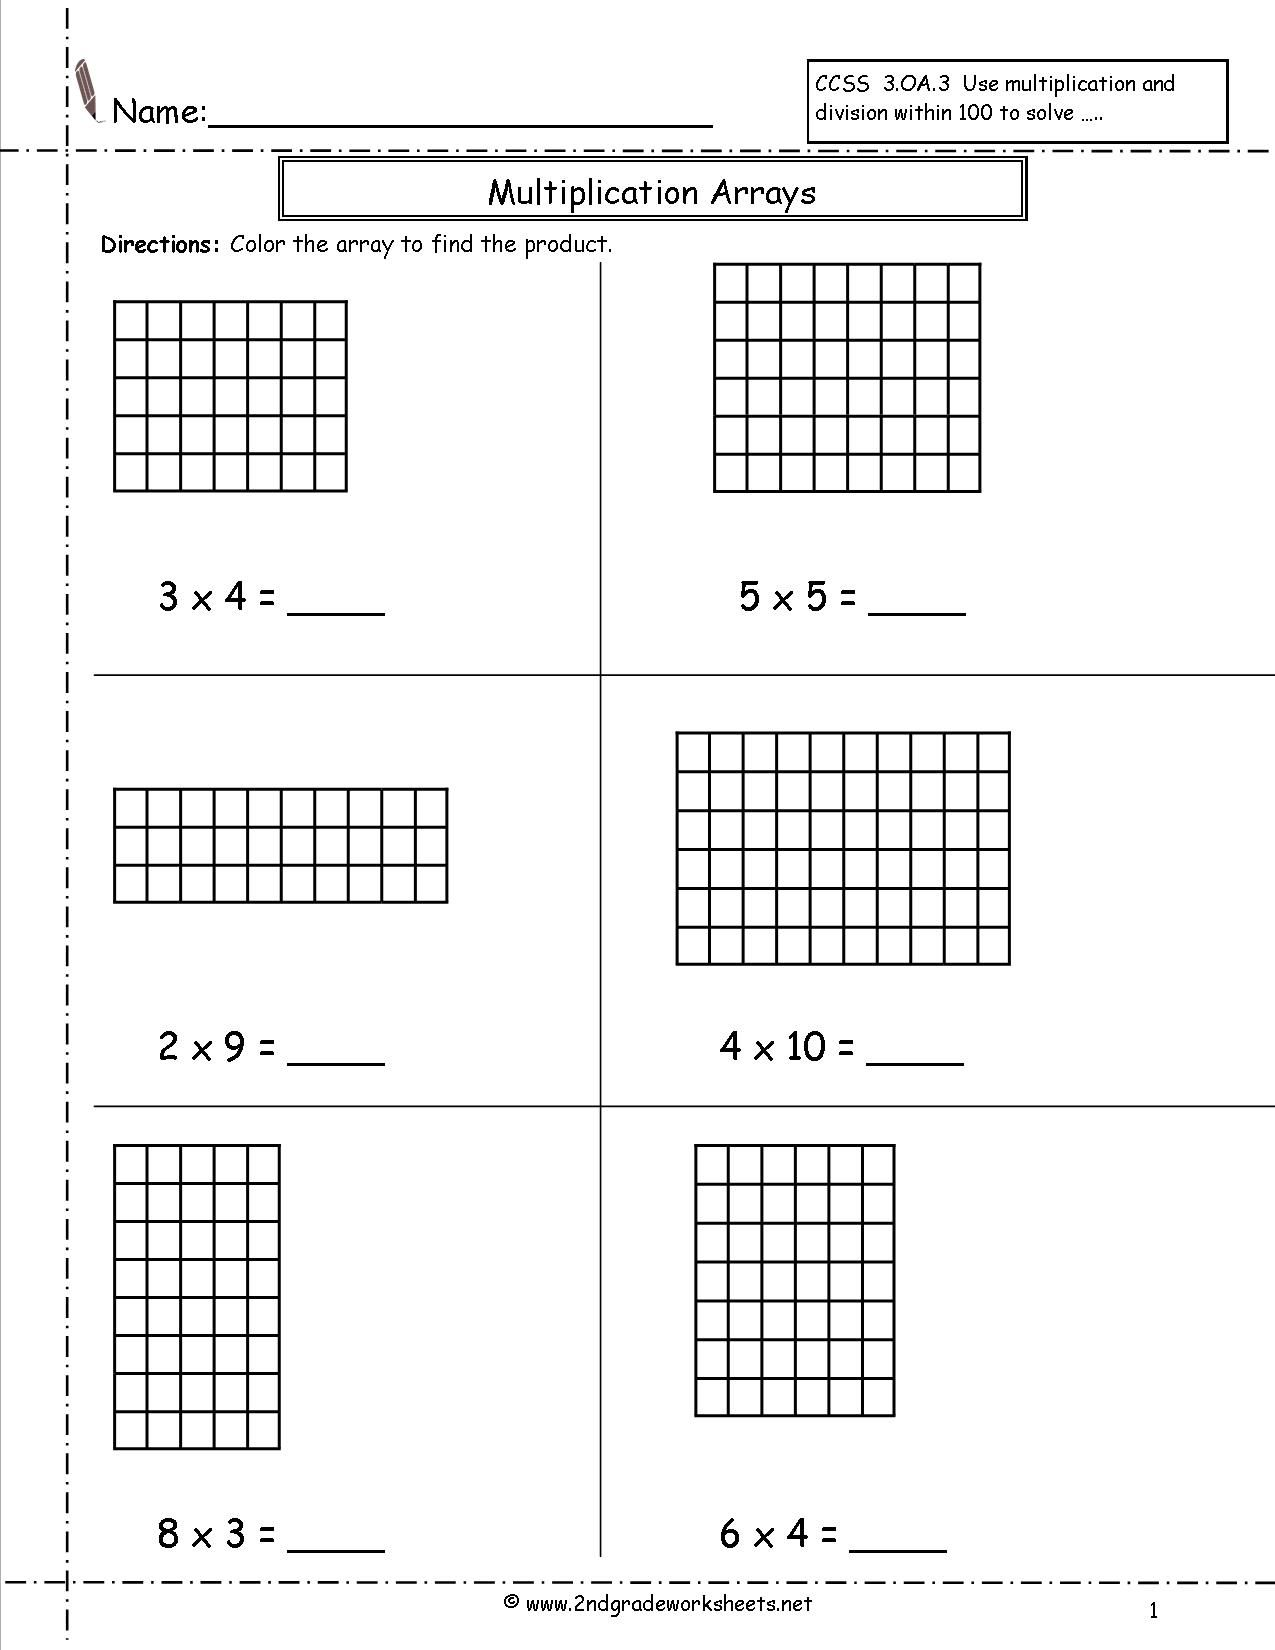 Multiplication Arrays Worksheets 4th Grade Thelying To By Math